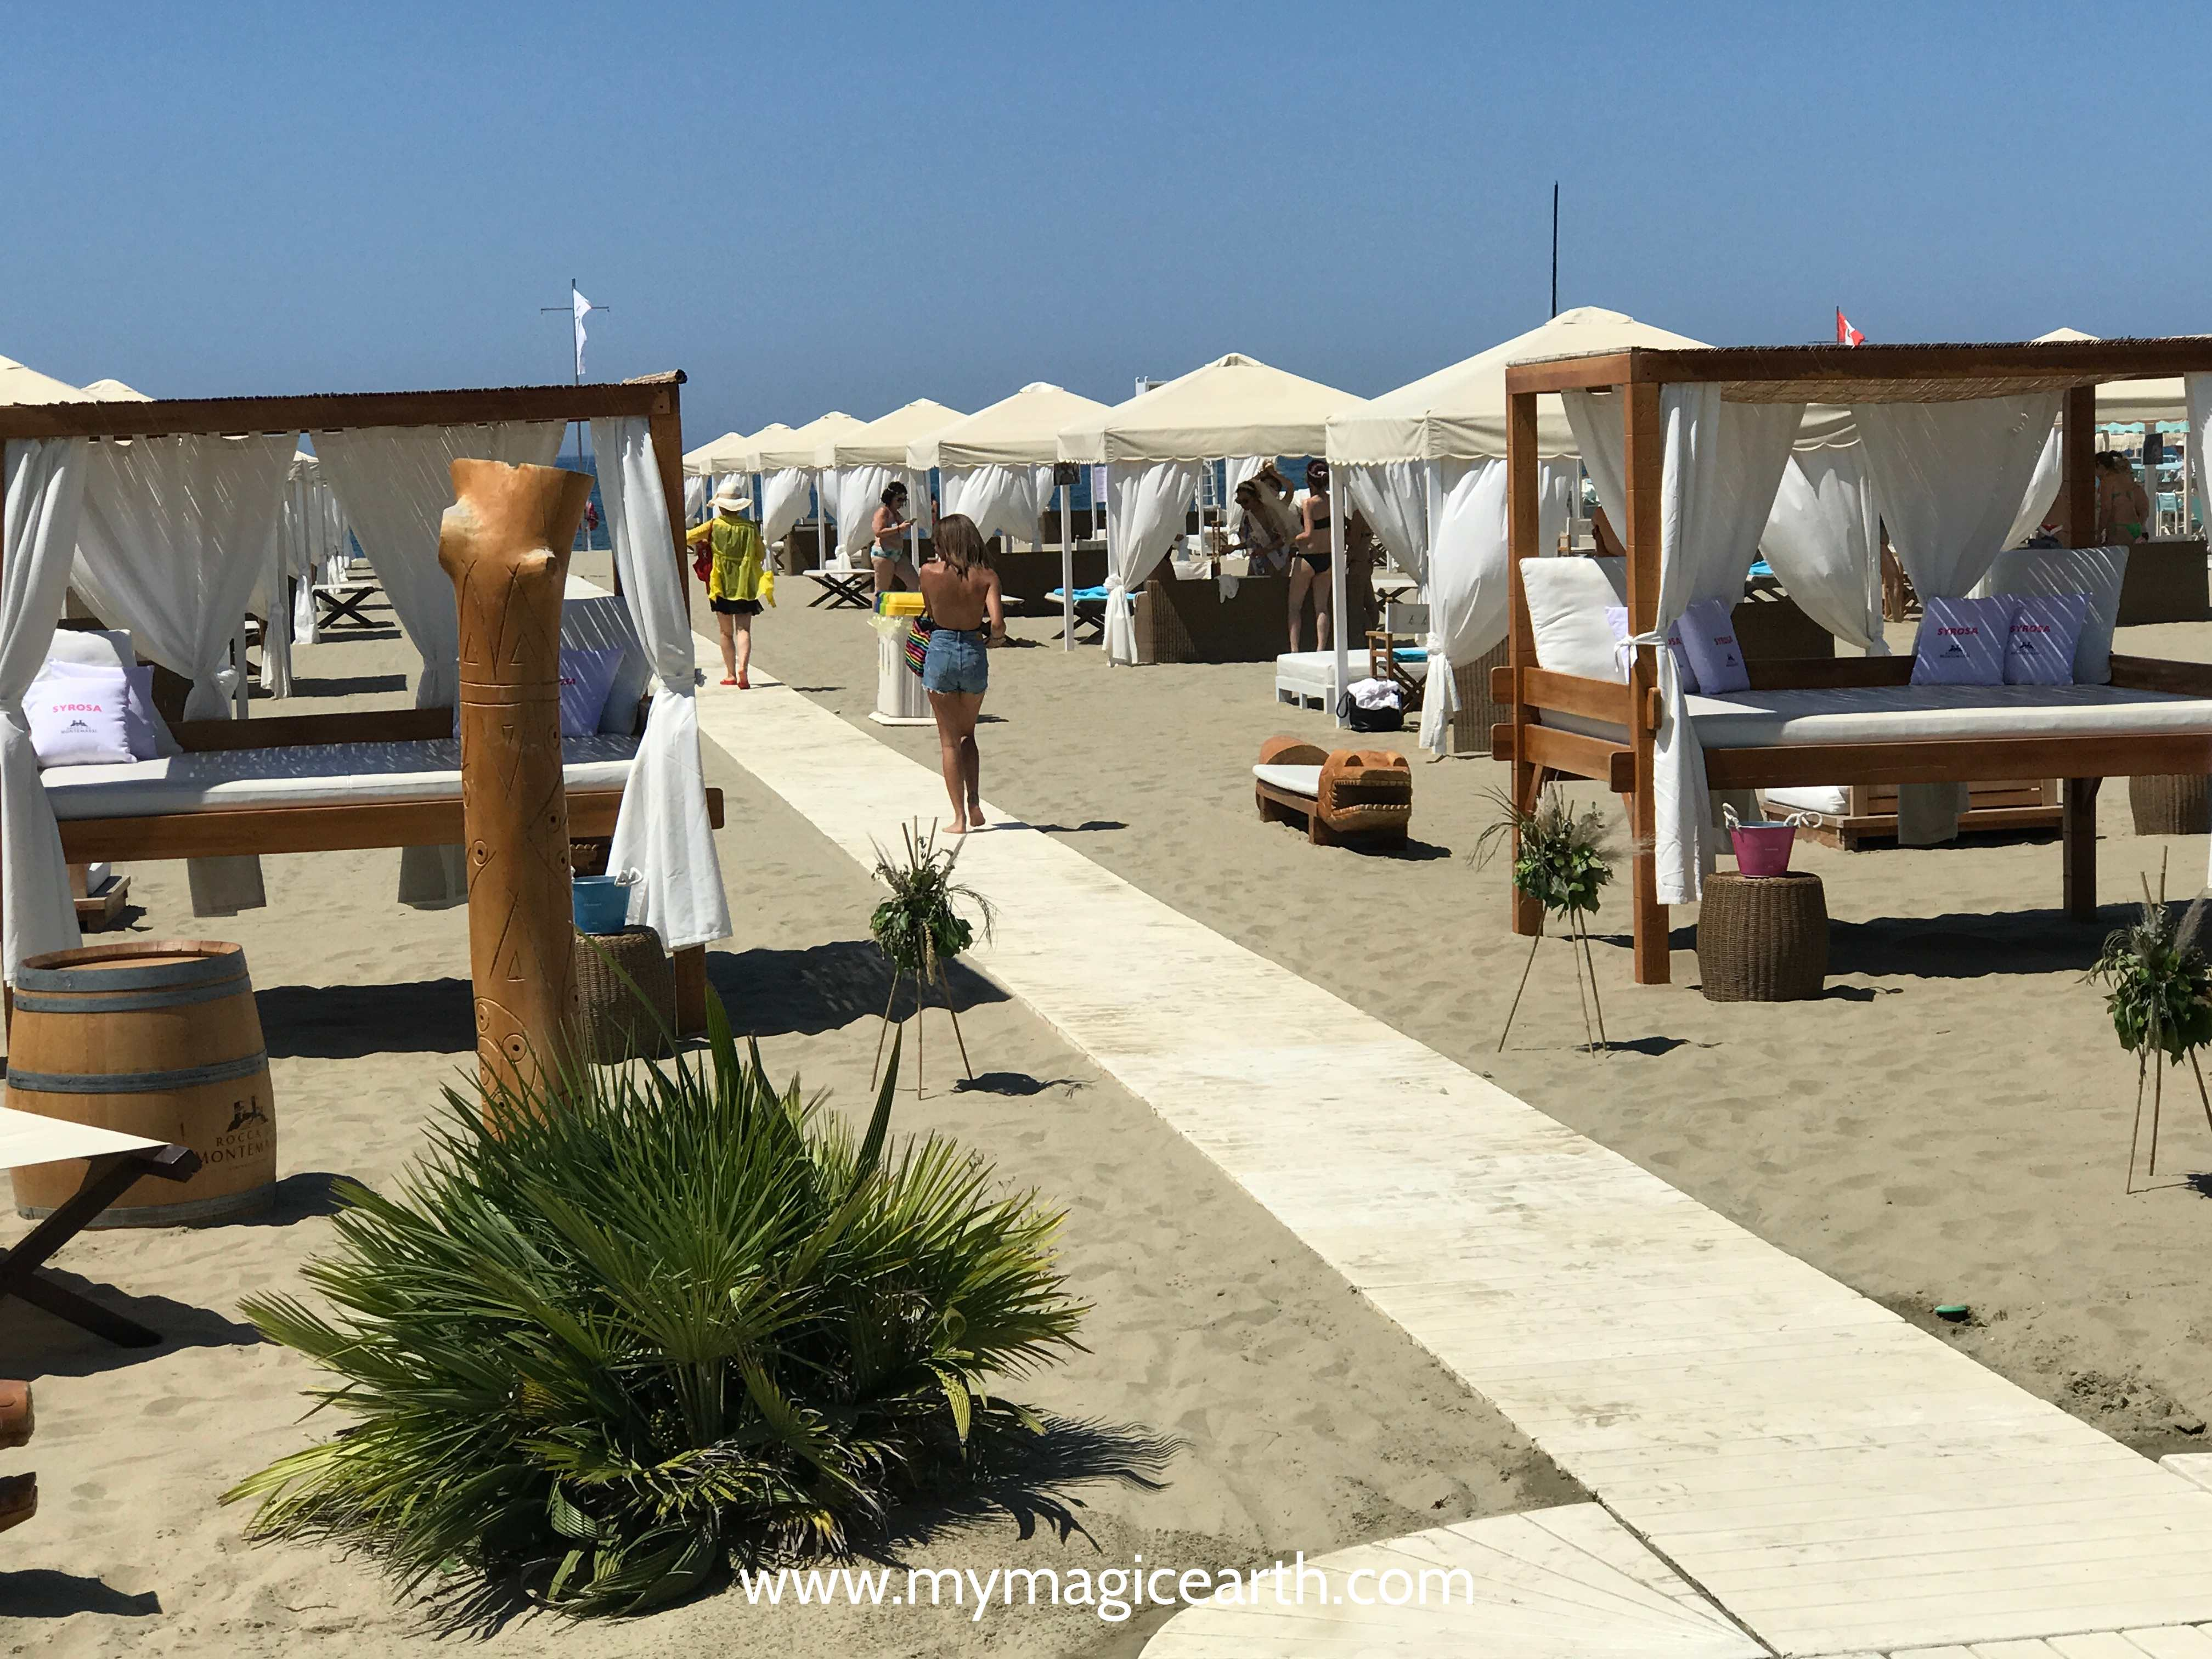 Plush sen beds from Nikki club, whilte wooden boards on Italian beach